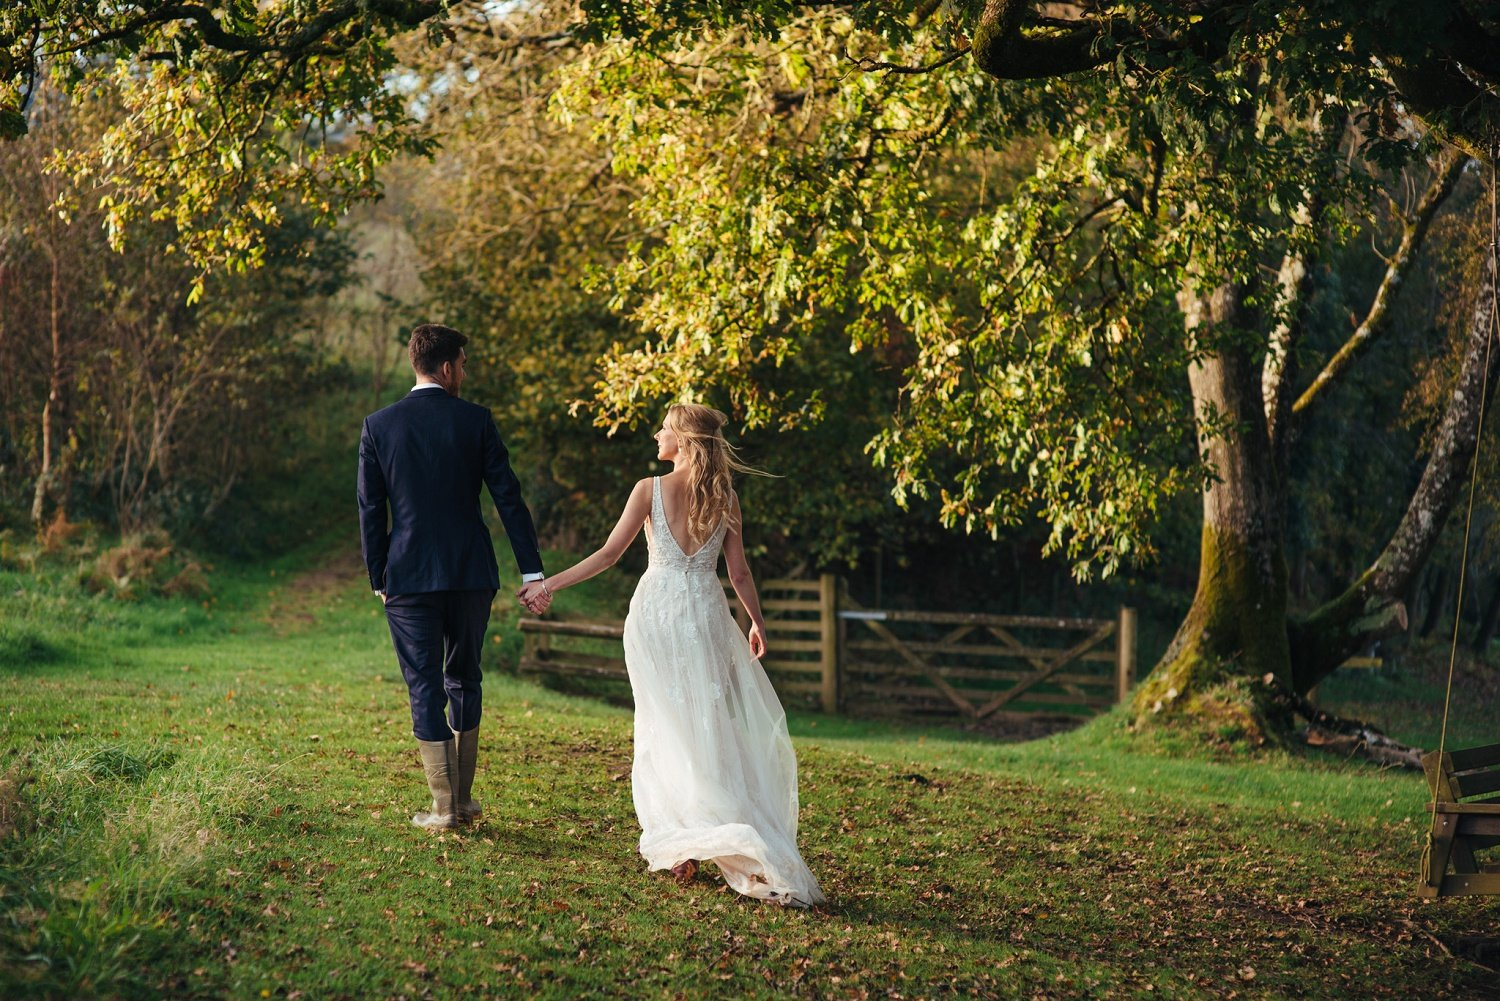 Bride wearing bohemian wedding dress follows her groom towards a clearing in the forest